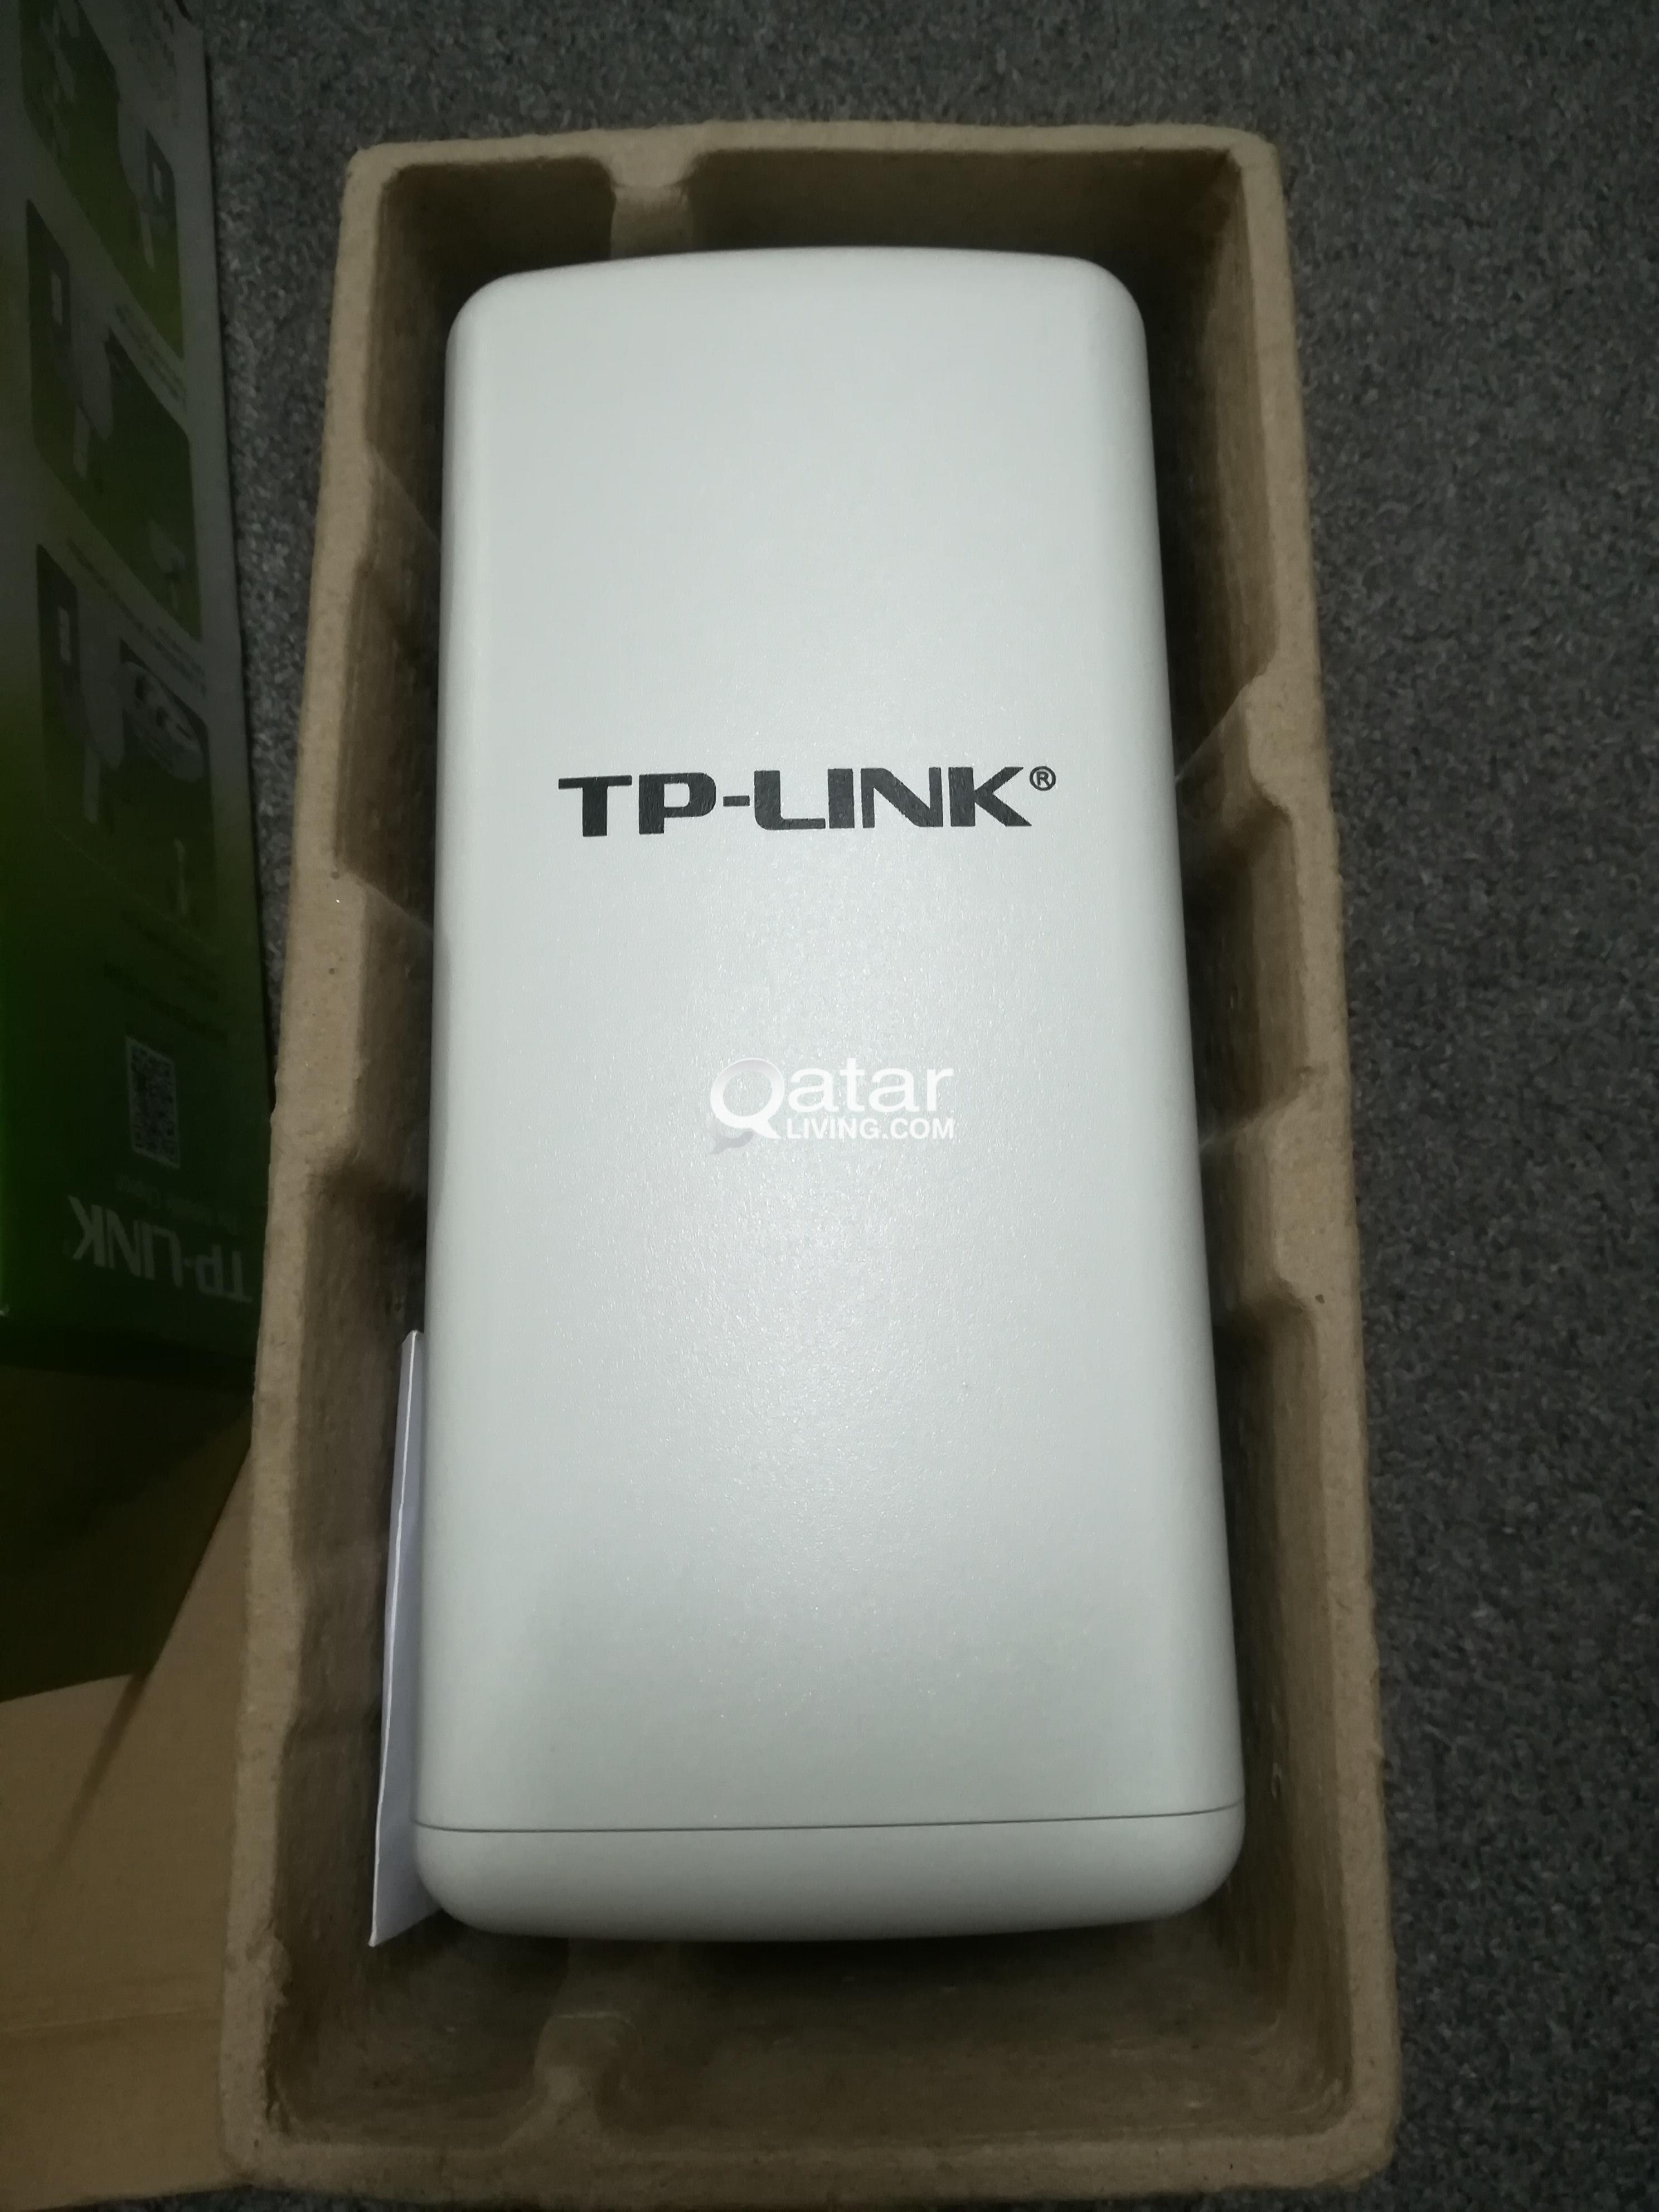 Tp Link Outdoor Access Point 150 Mbps Qatar Living Tplink